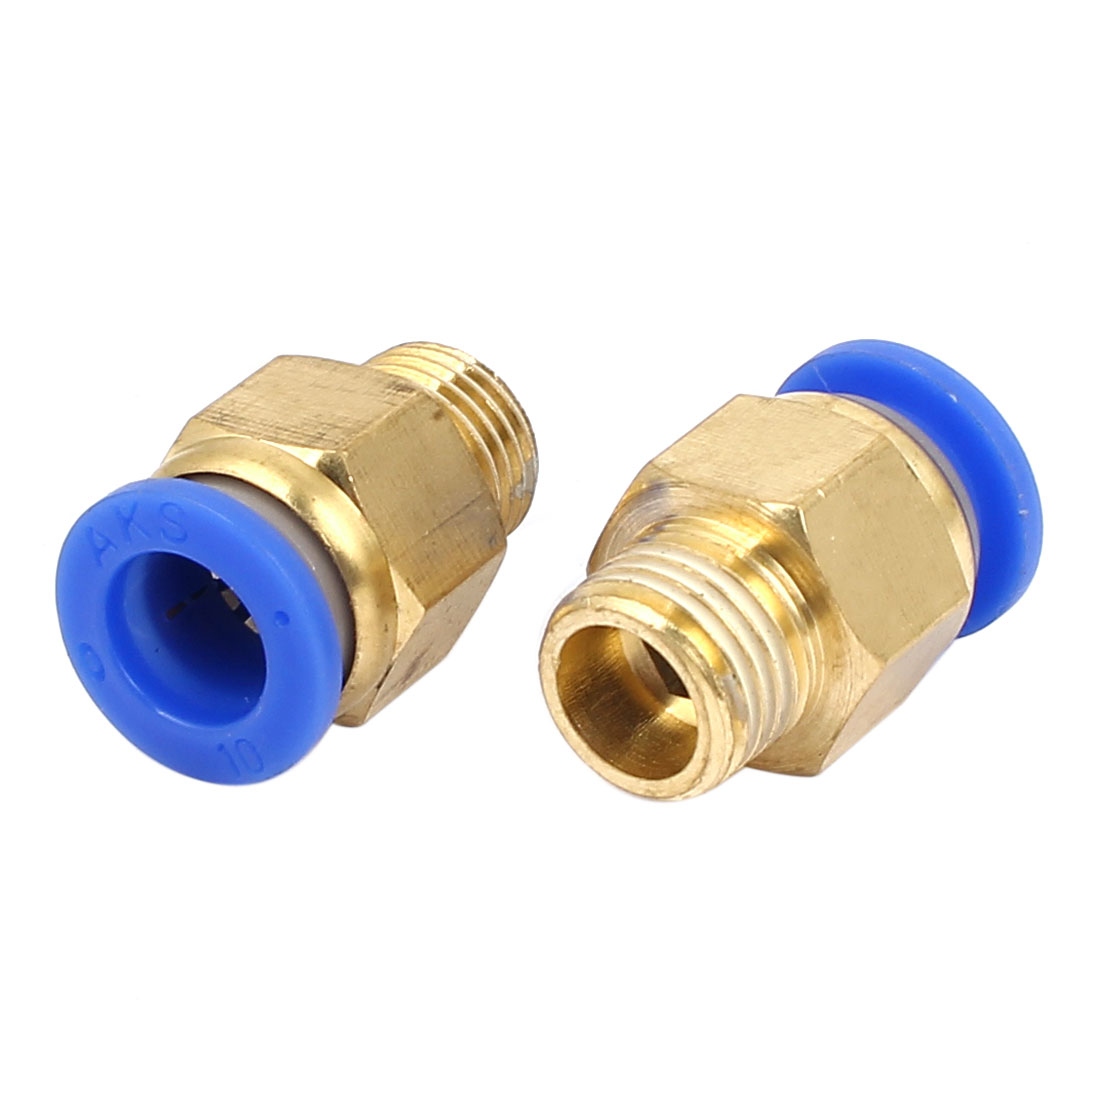 10mm to 1/4BSP Male Thread Pneumatic Tubing Push In Quick Fittings 2pcs